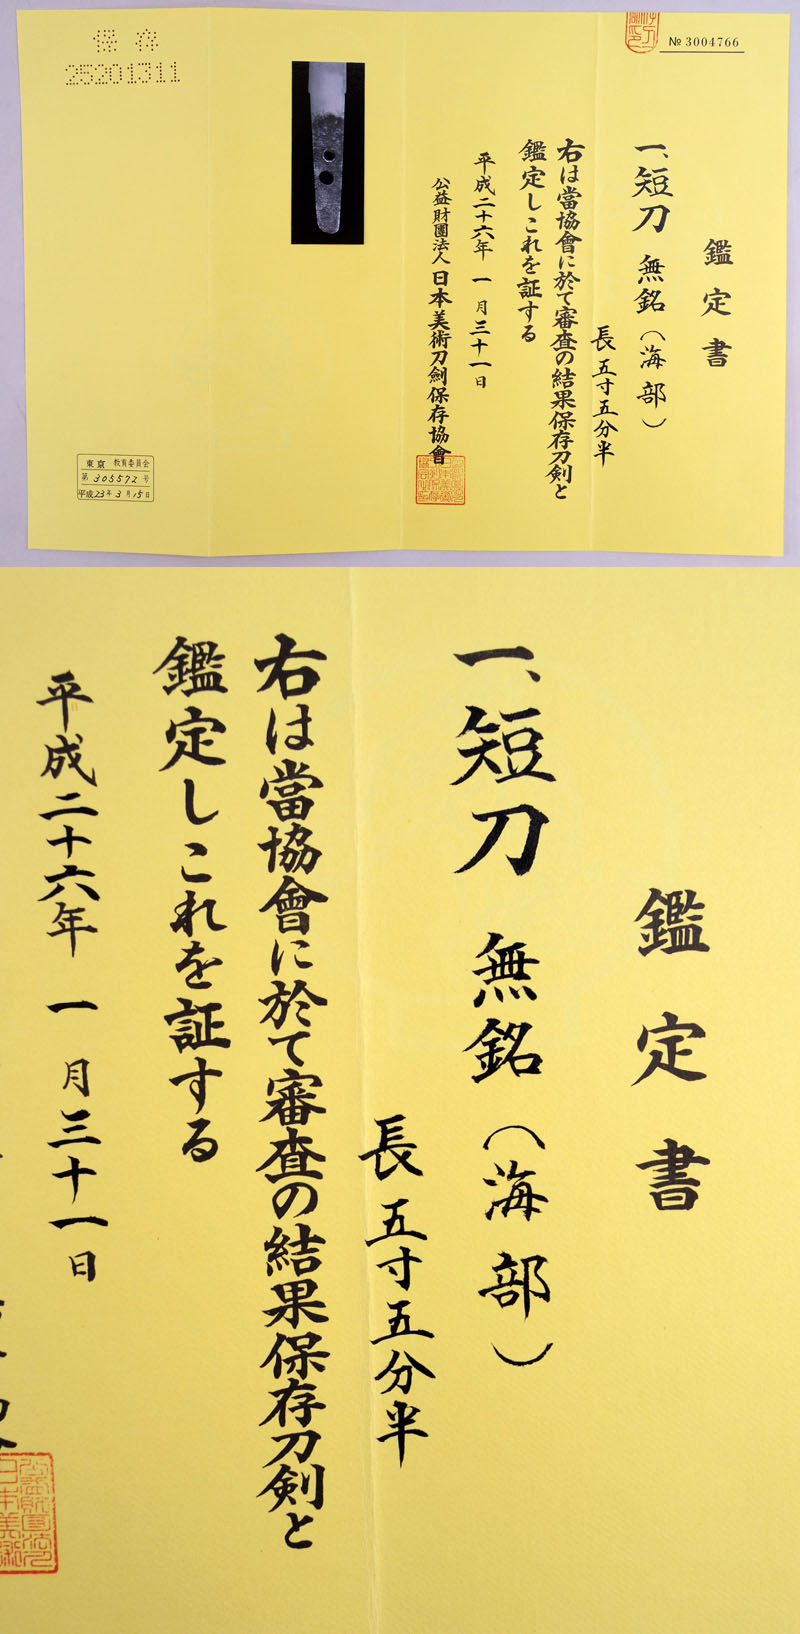 無銘(海部) Picture of Certificate